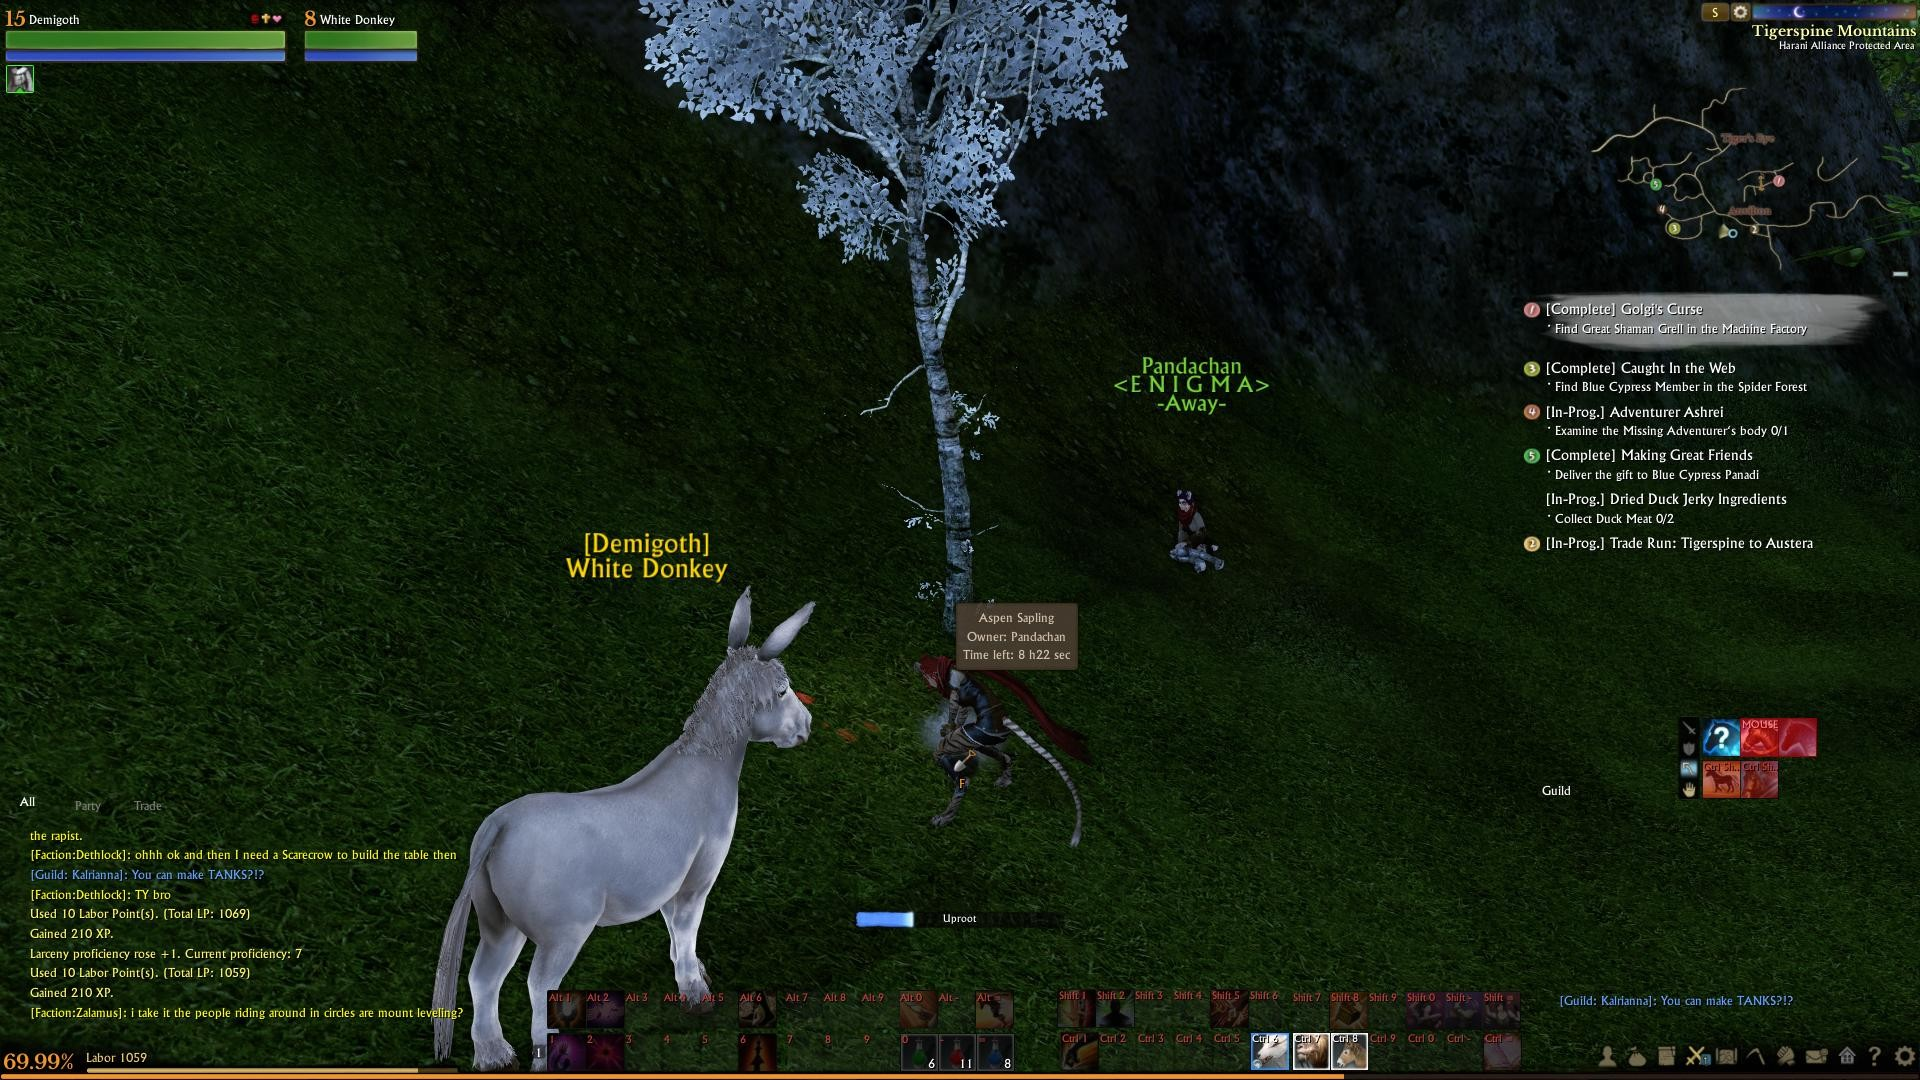 ArcheAge - It helps to stay AFK with your trees in a non-PvP area